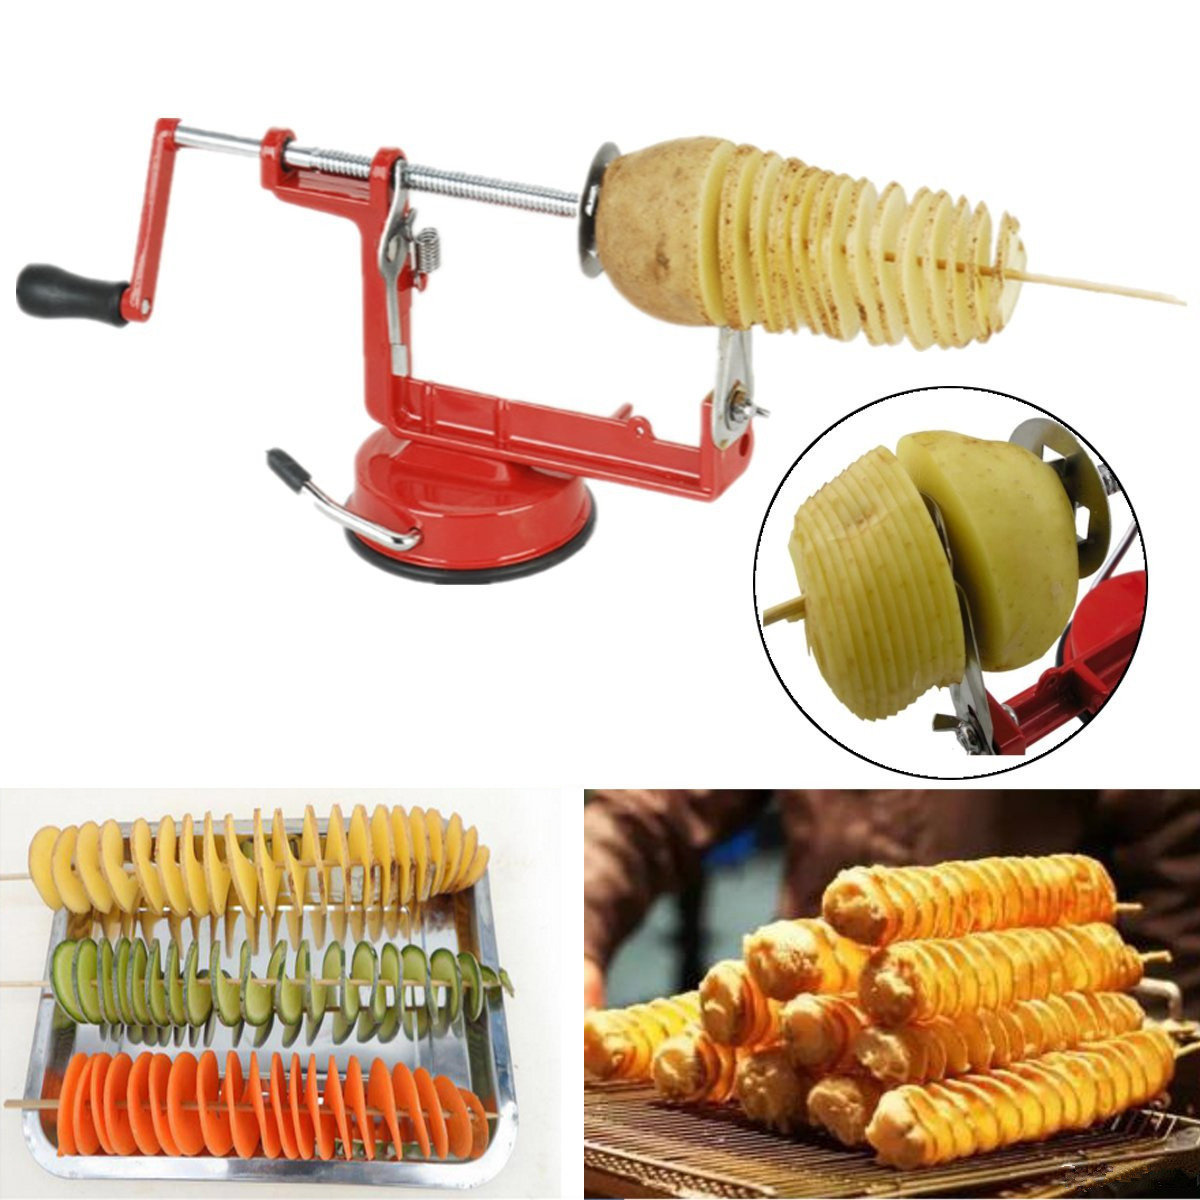 M.way Stainless Steel Spiral Slicer Twisted Potato Apple Manual French Fry Cutter